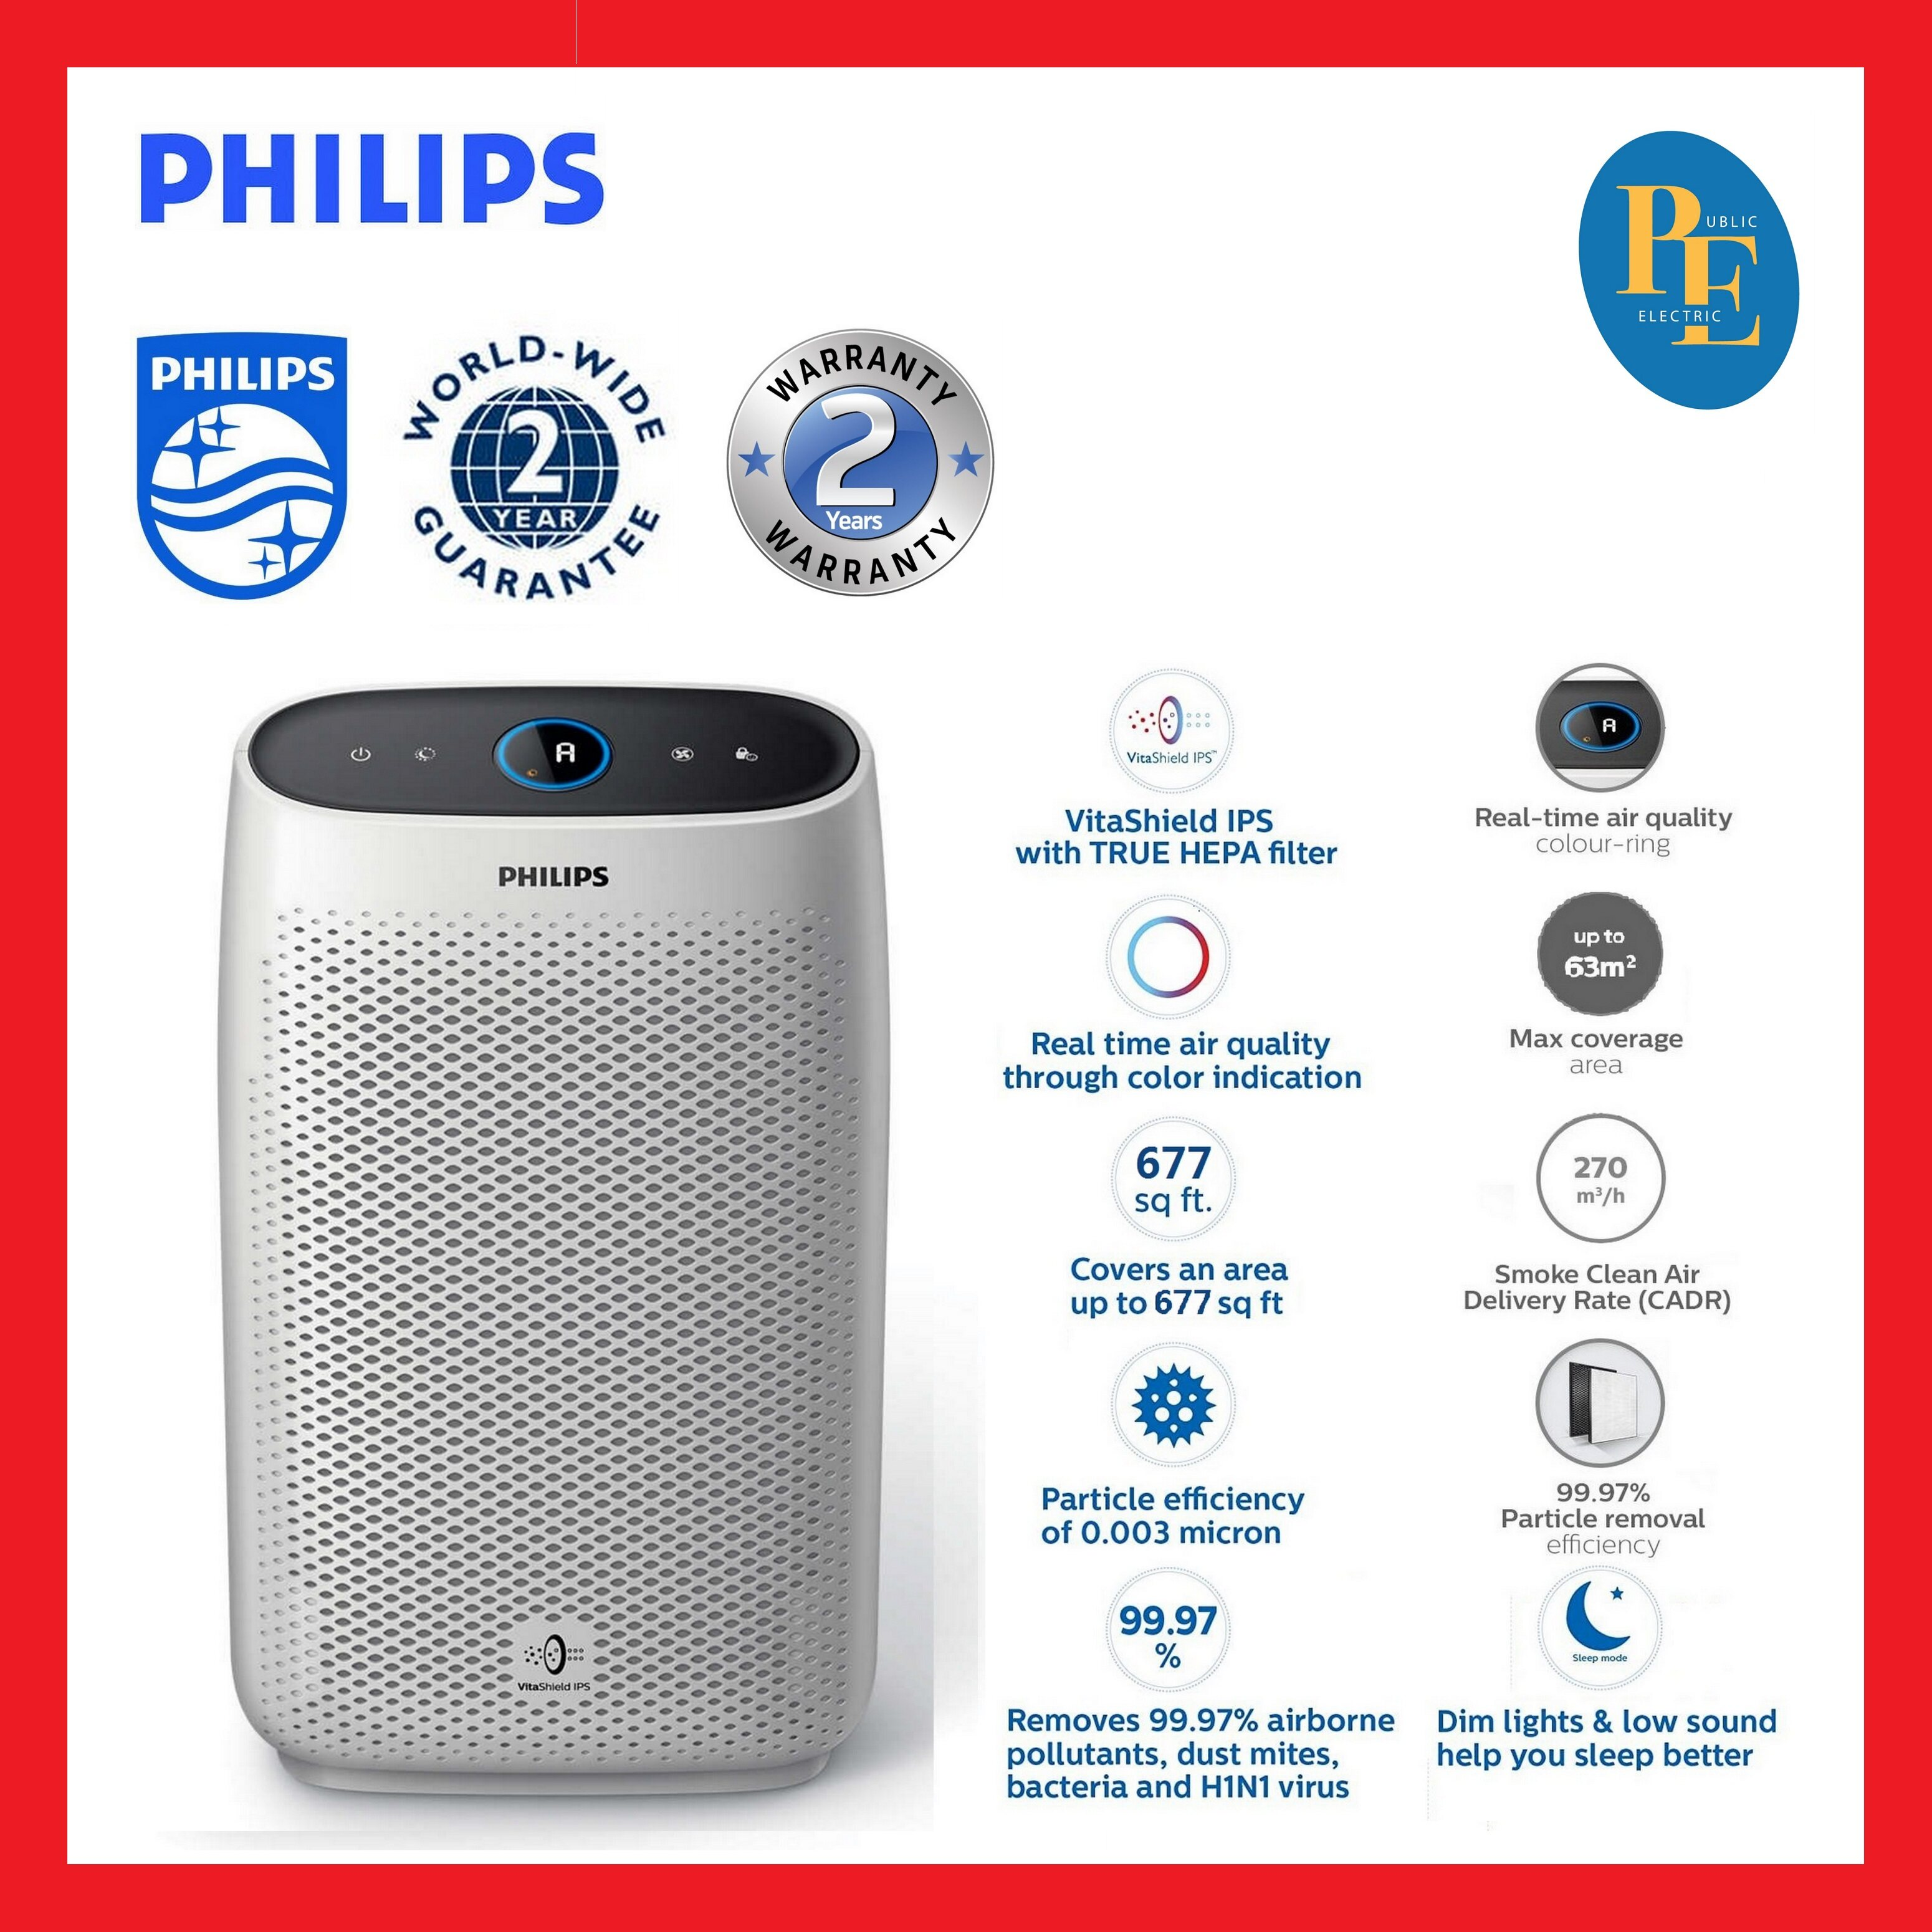 Philips Air Cleaner Air Purifier 63m   - AC1215